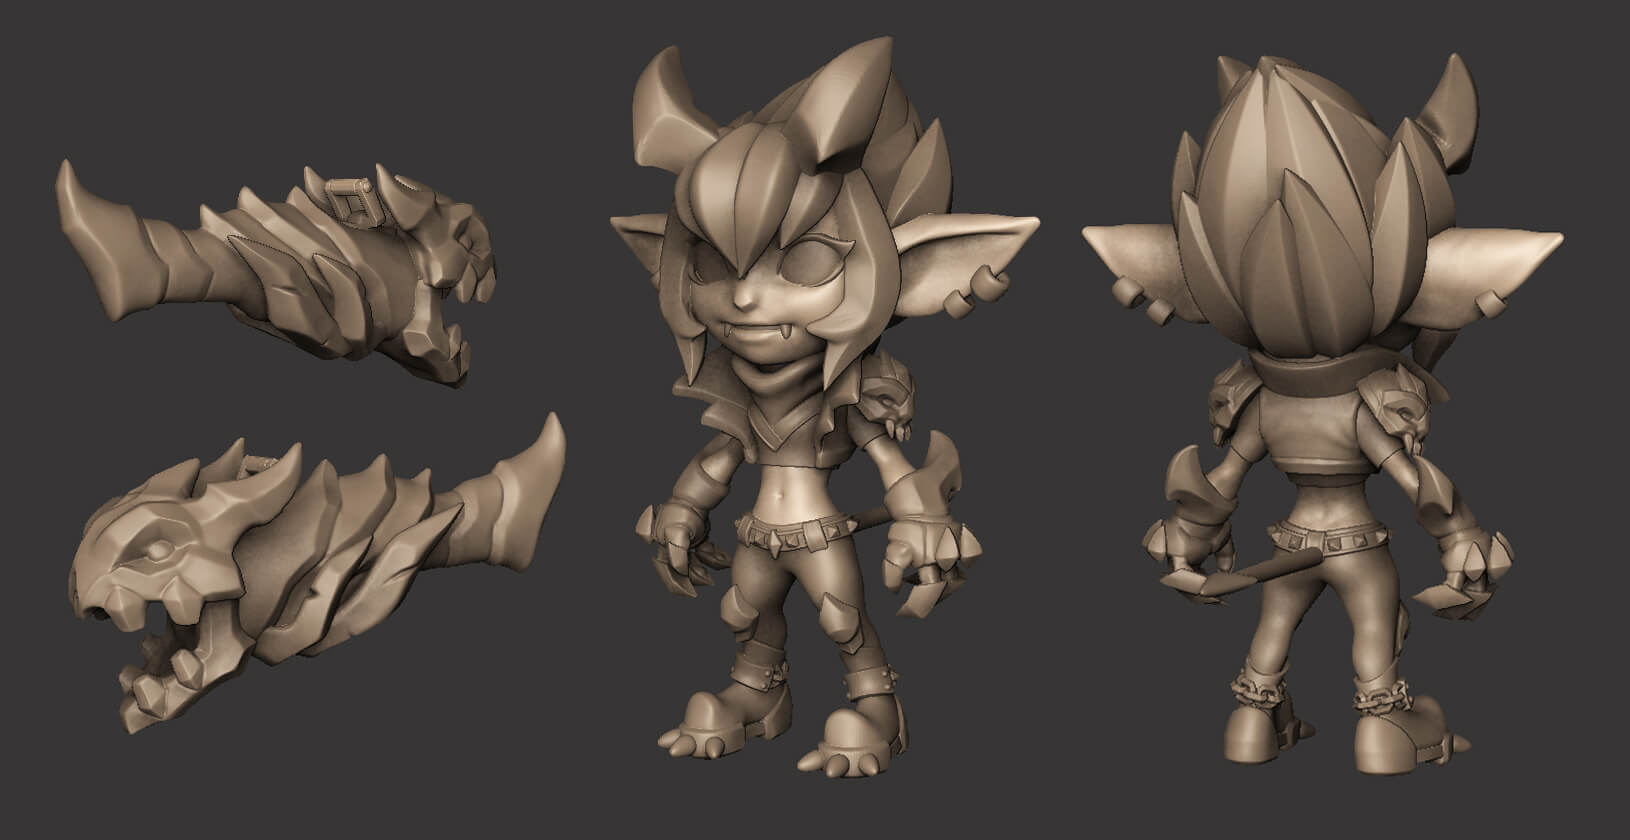 03_Tristana_Final_High_Poly_Sculpt_8bovvb1lfelgoj9ho0yd.jpg - 71.94 kb